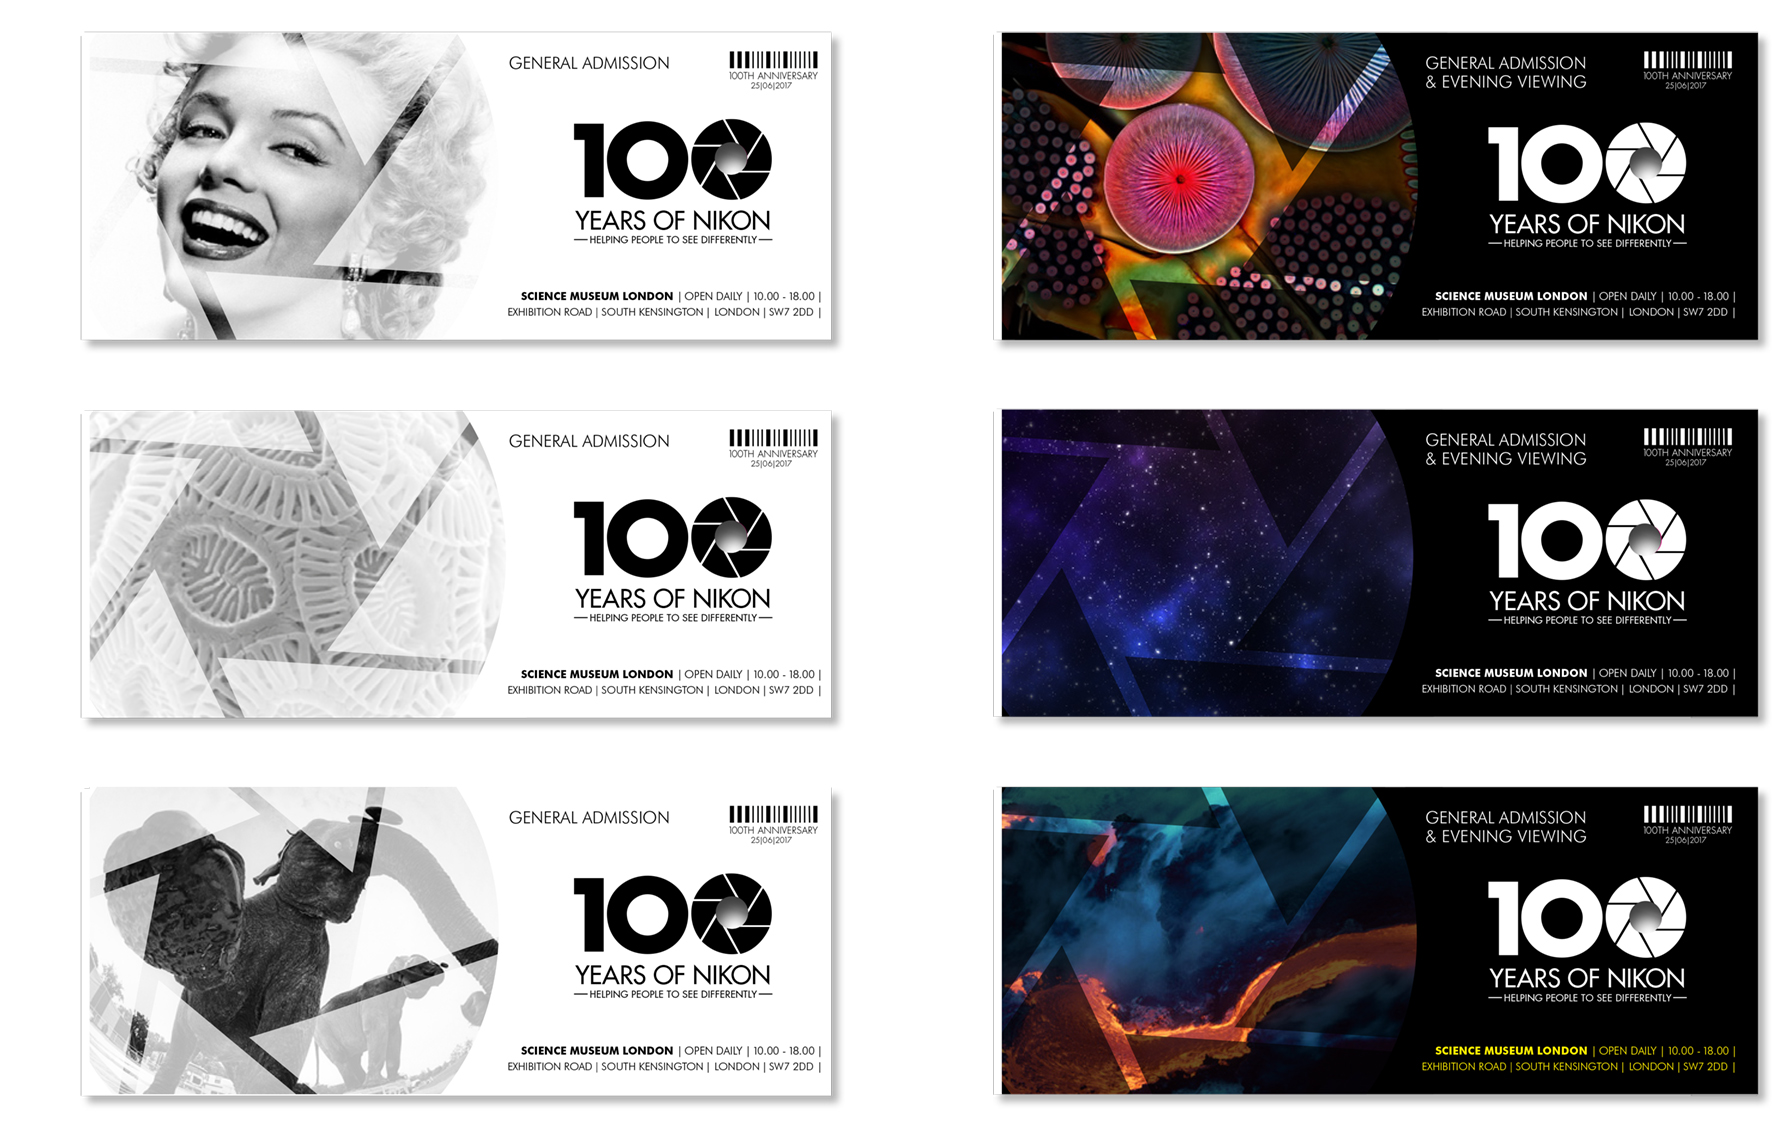 Exhibition ticket designs